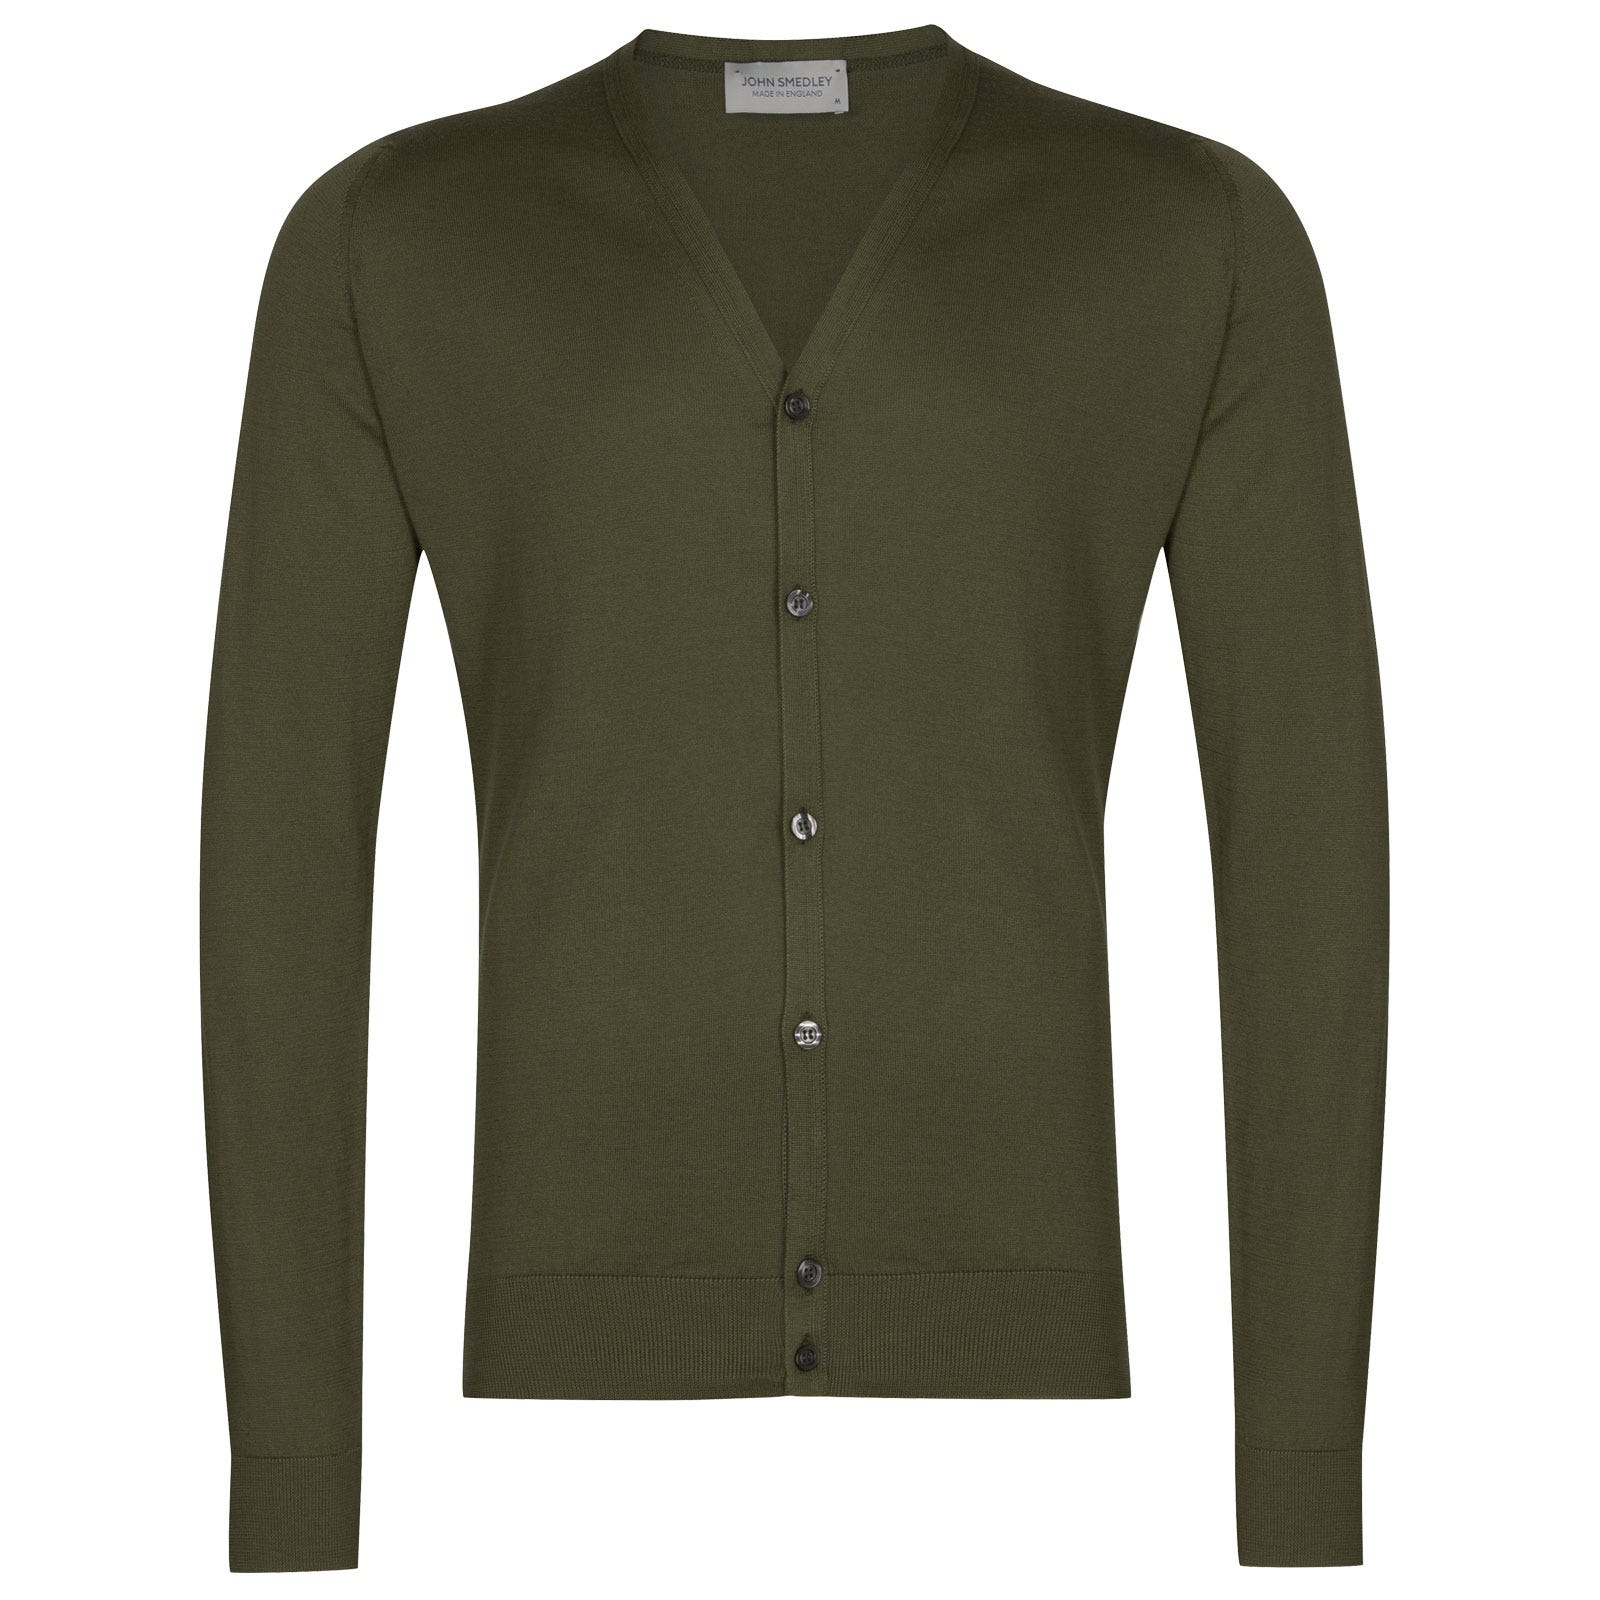 John Smedley Whitchurch in Sepal green Cardigan-LGE